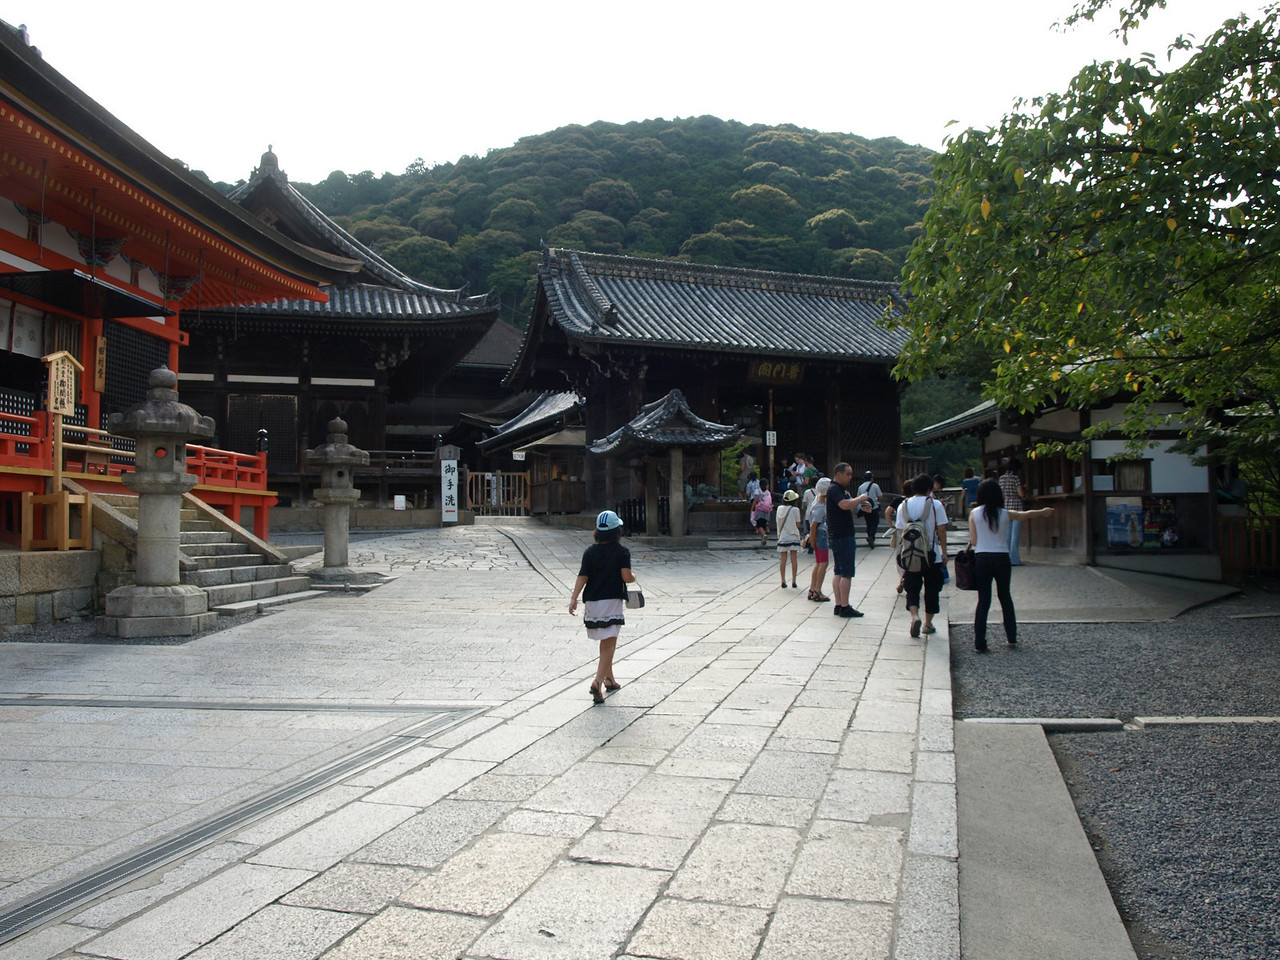 Ahead of us is Todoroki-Mon, the Middle gate resounding the call to the Buddha's Teachings. To the left is Kaisan-Do, the Founder's Hall